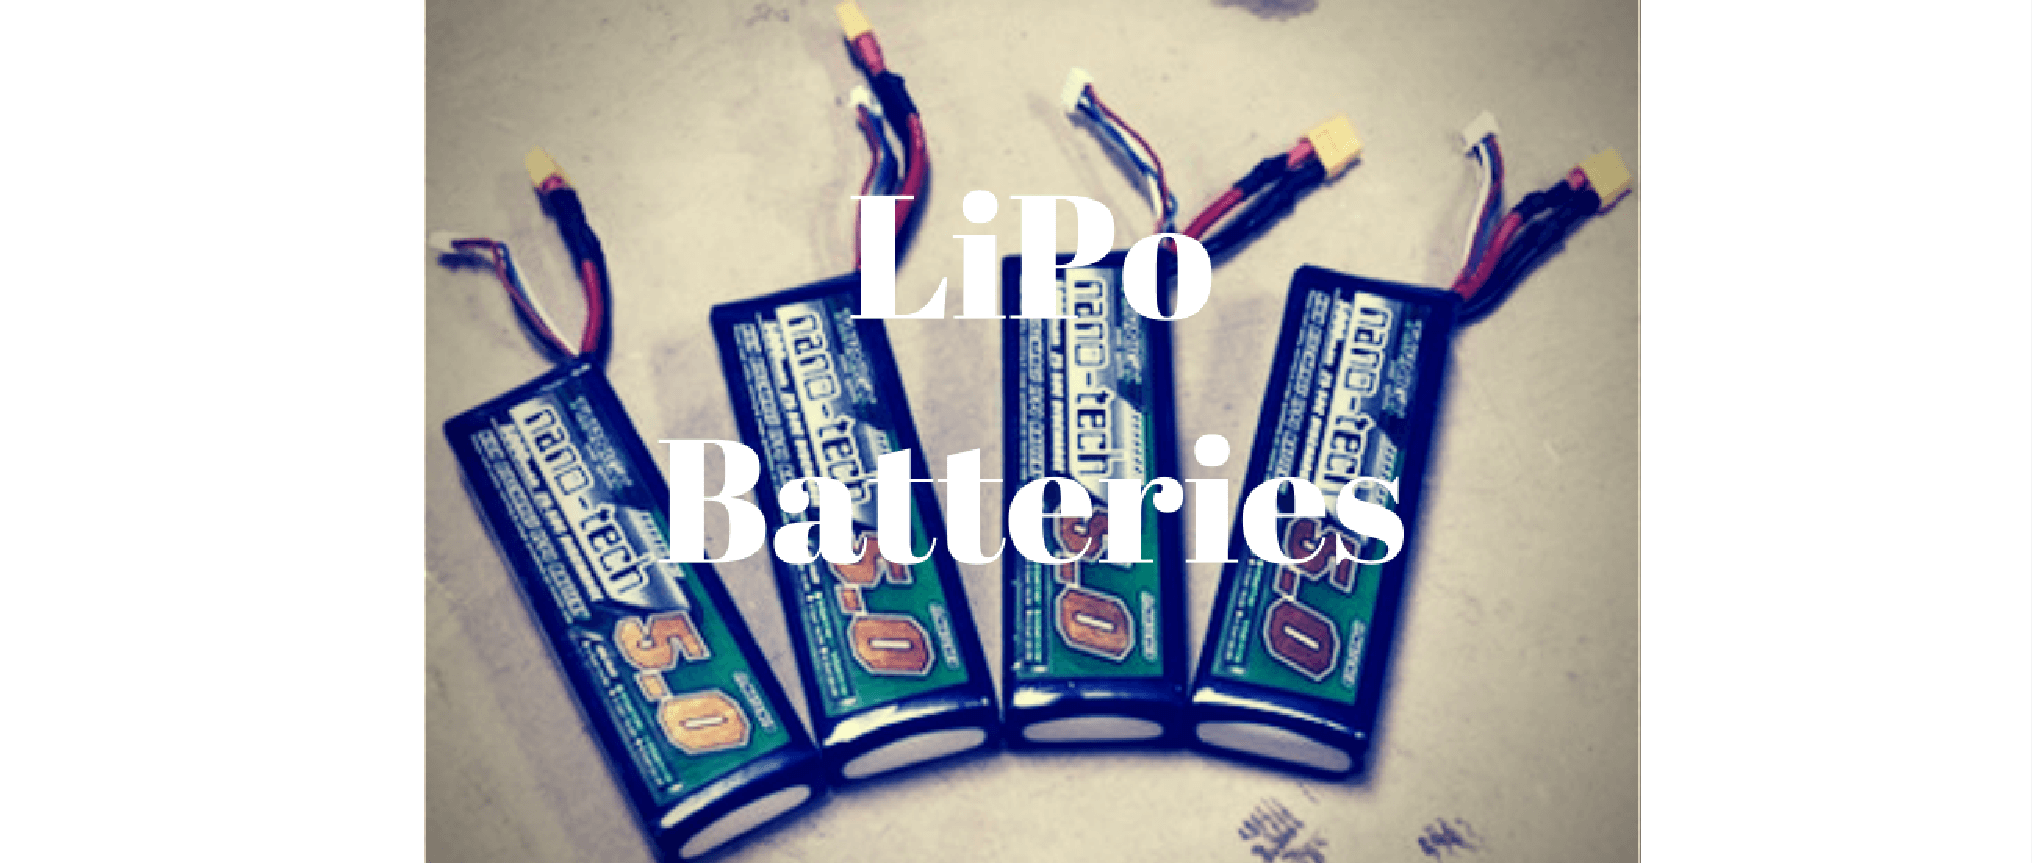 Rc Lipo Battery Guide Explanation Safety And Care Learningrc Fastchargerwithcutoffcircuitpng